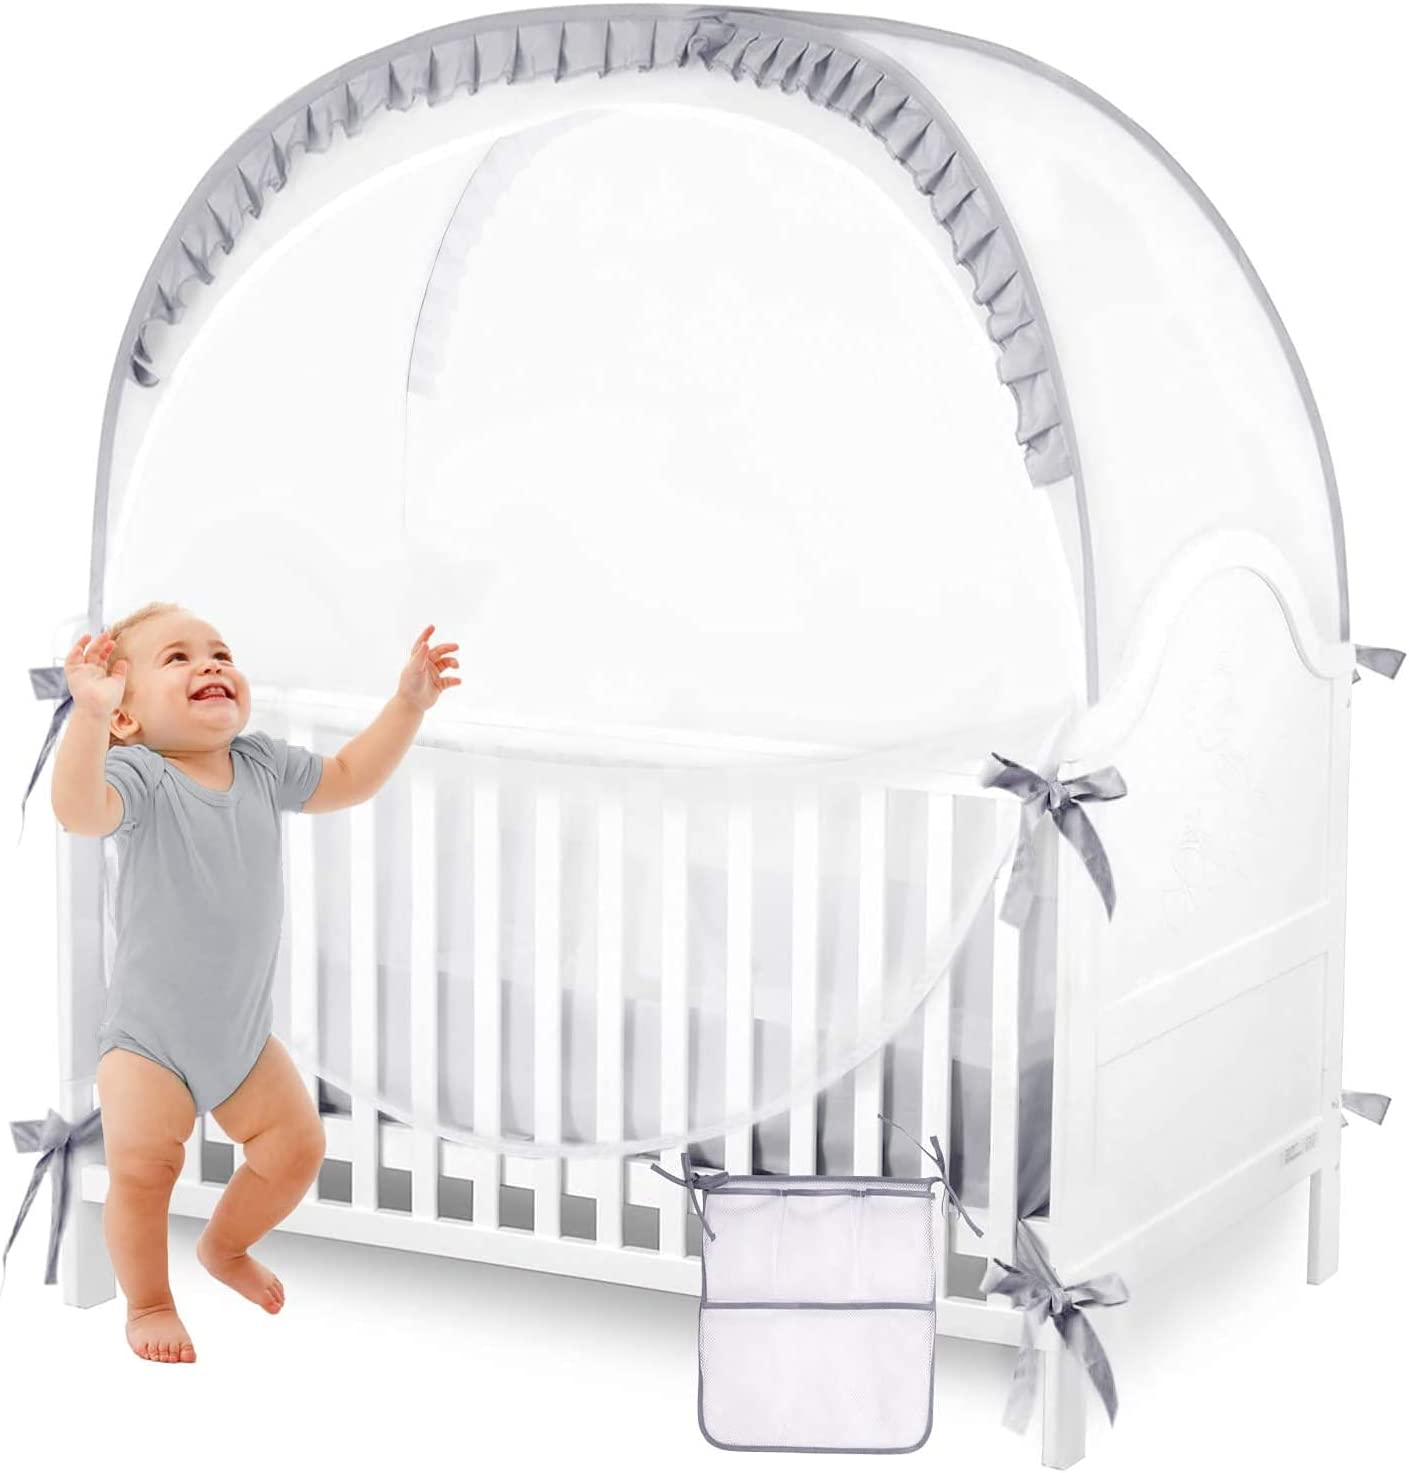 ZXPLO Baby Safety Crib Tent Infant Pop up Mosquito Net Nursery Bed Canopy Netting Cover - Keep Baby from Climbing Out with Hanging Diaper Storage Bag (Gray)